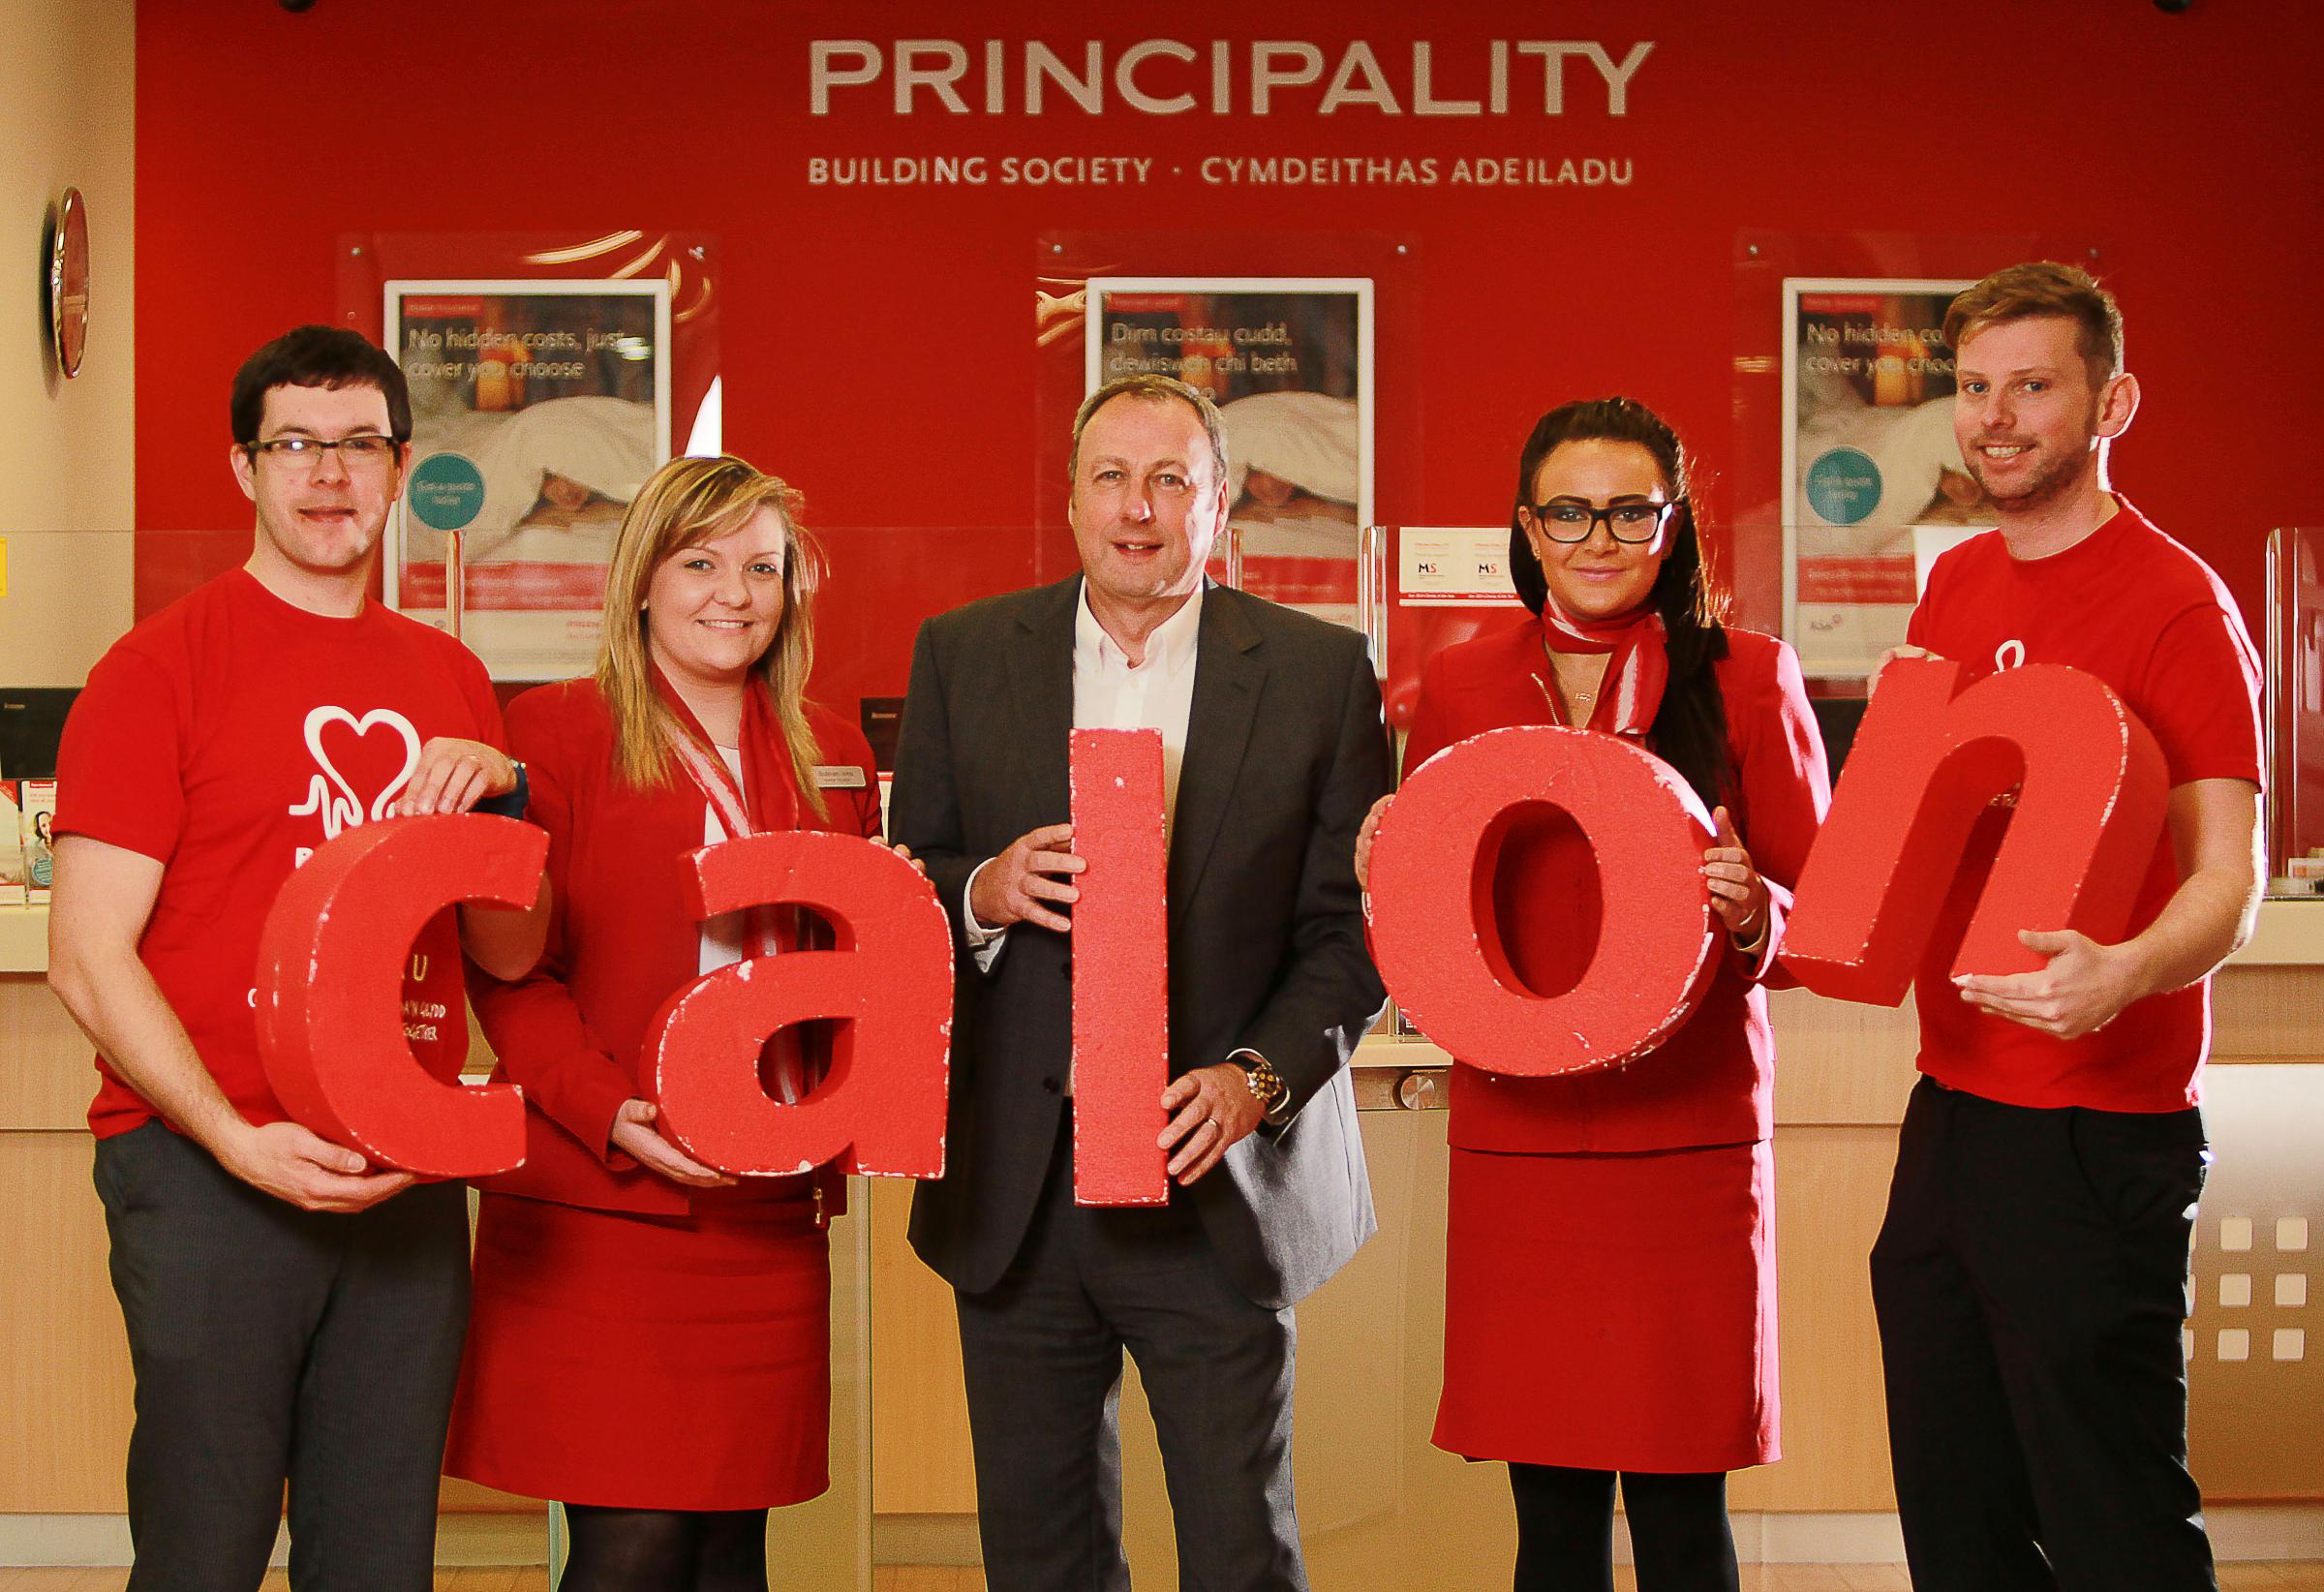 TEAM EFFORT: Sion Edwards, Siobhan Ivins, Graeme Yorston - Principality Group Chief Executive, Danielle Smout and Luke Mallett  © Huw Evans Picture Agency